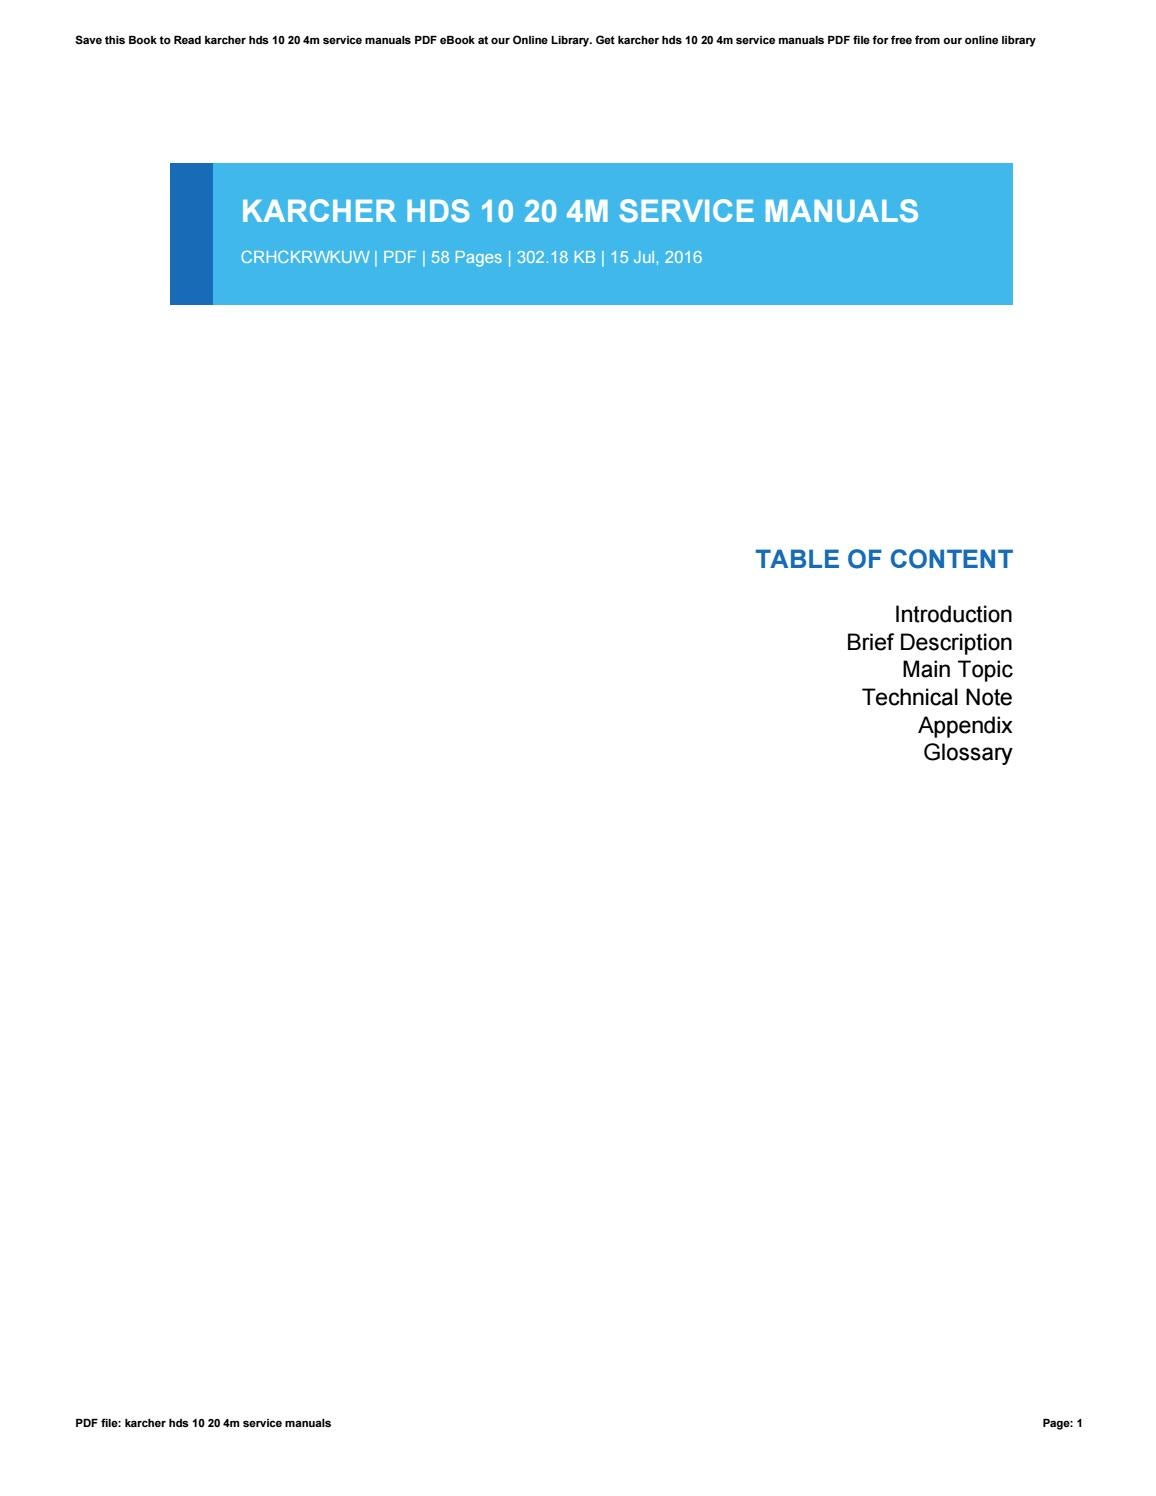 Karcher Hds Manual Ebook 580 Wiring Diagram Array 10 20 4m Service Manuals By Randybridges4125 Issuu Rh